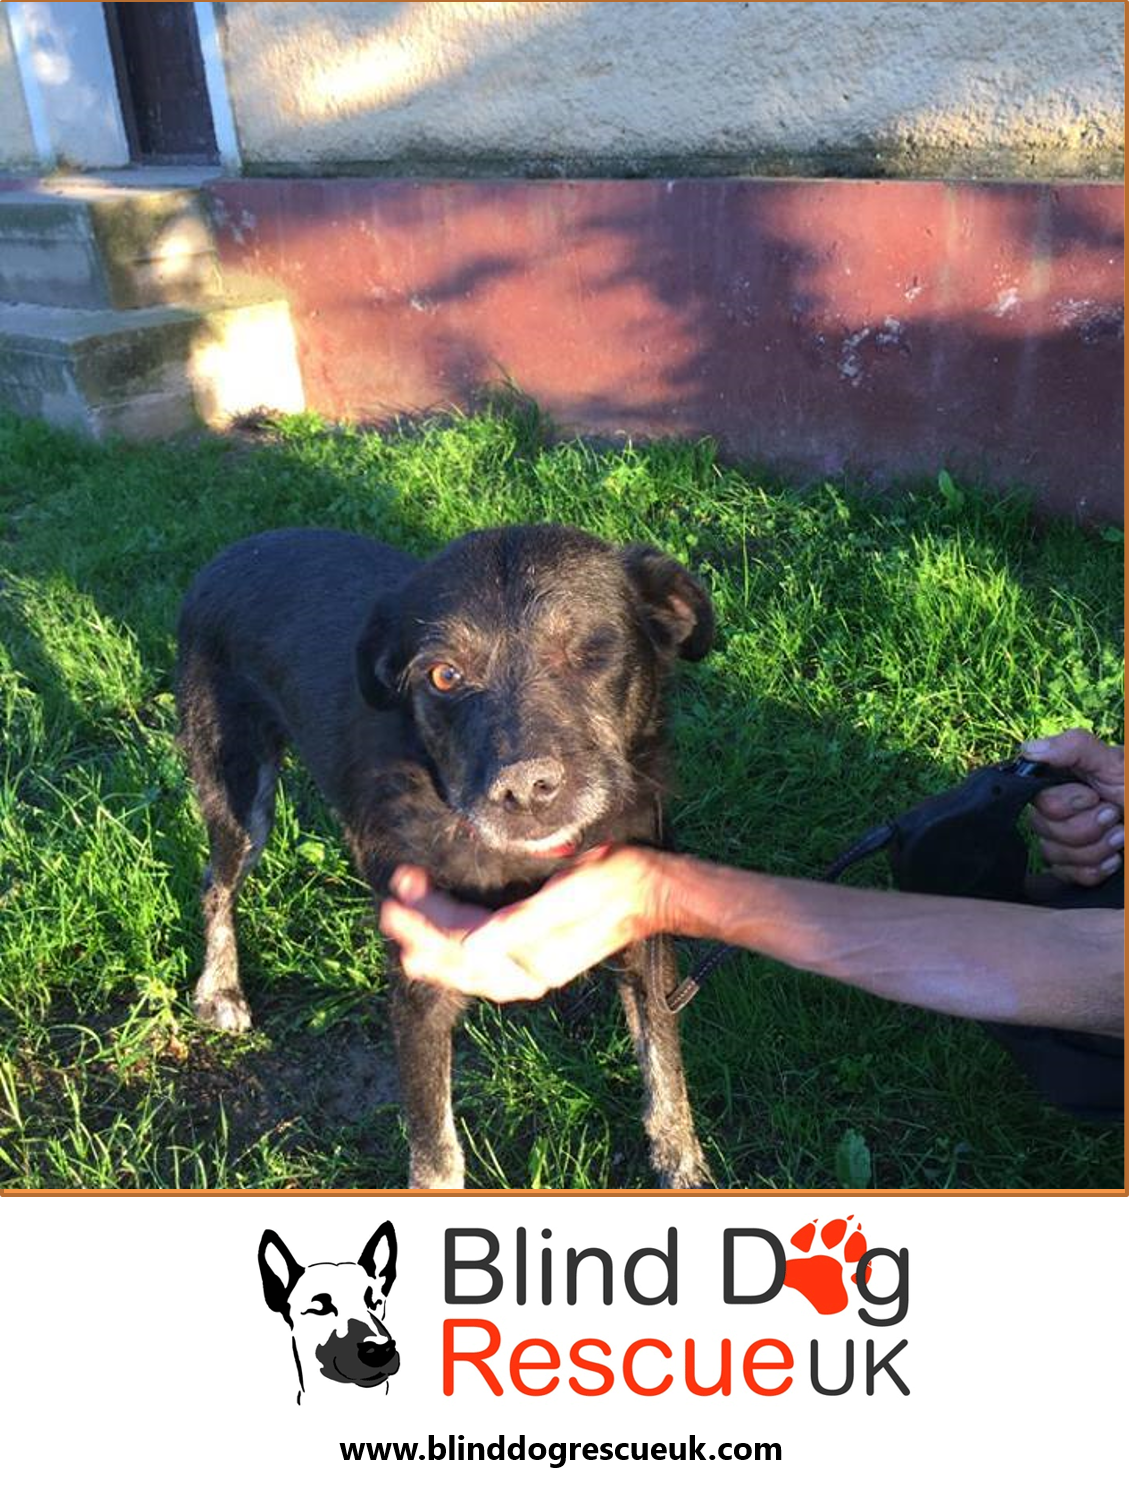 Super Friendly Milo Would Love A Home Of His Own He Gets On Well With Other Dogs Please Contact Bdrukrehoming Yahoo Com Dog Rescue Uk Blind Dog Dog Adoption